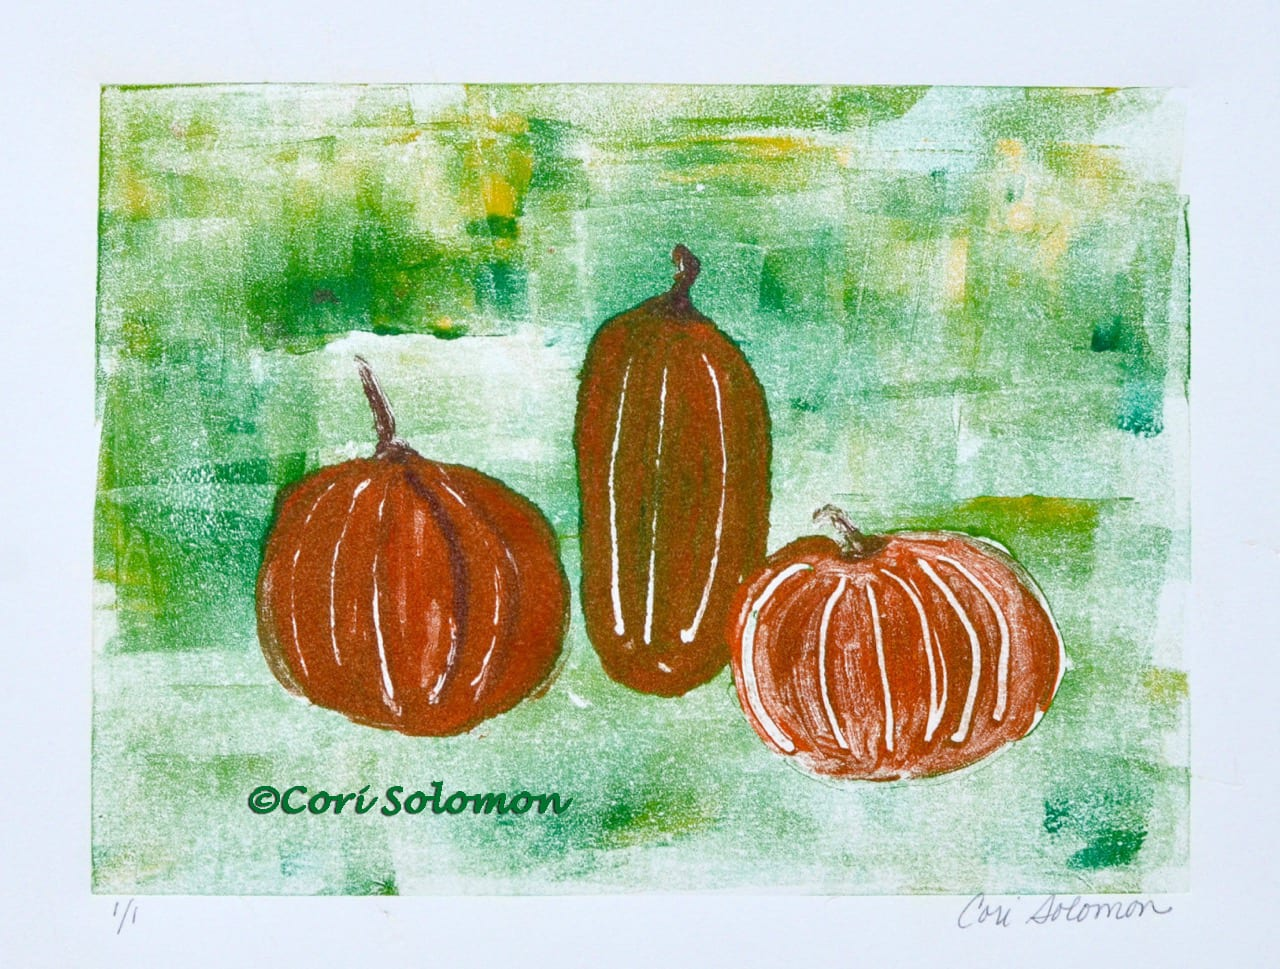 Harvest Time in the pumpkin patch by Cori Solomon